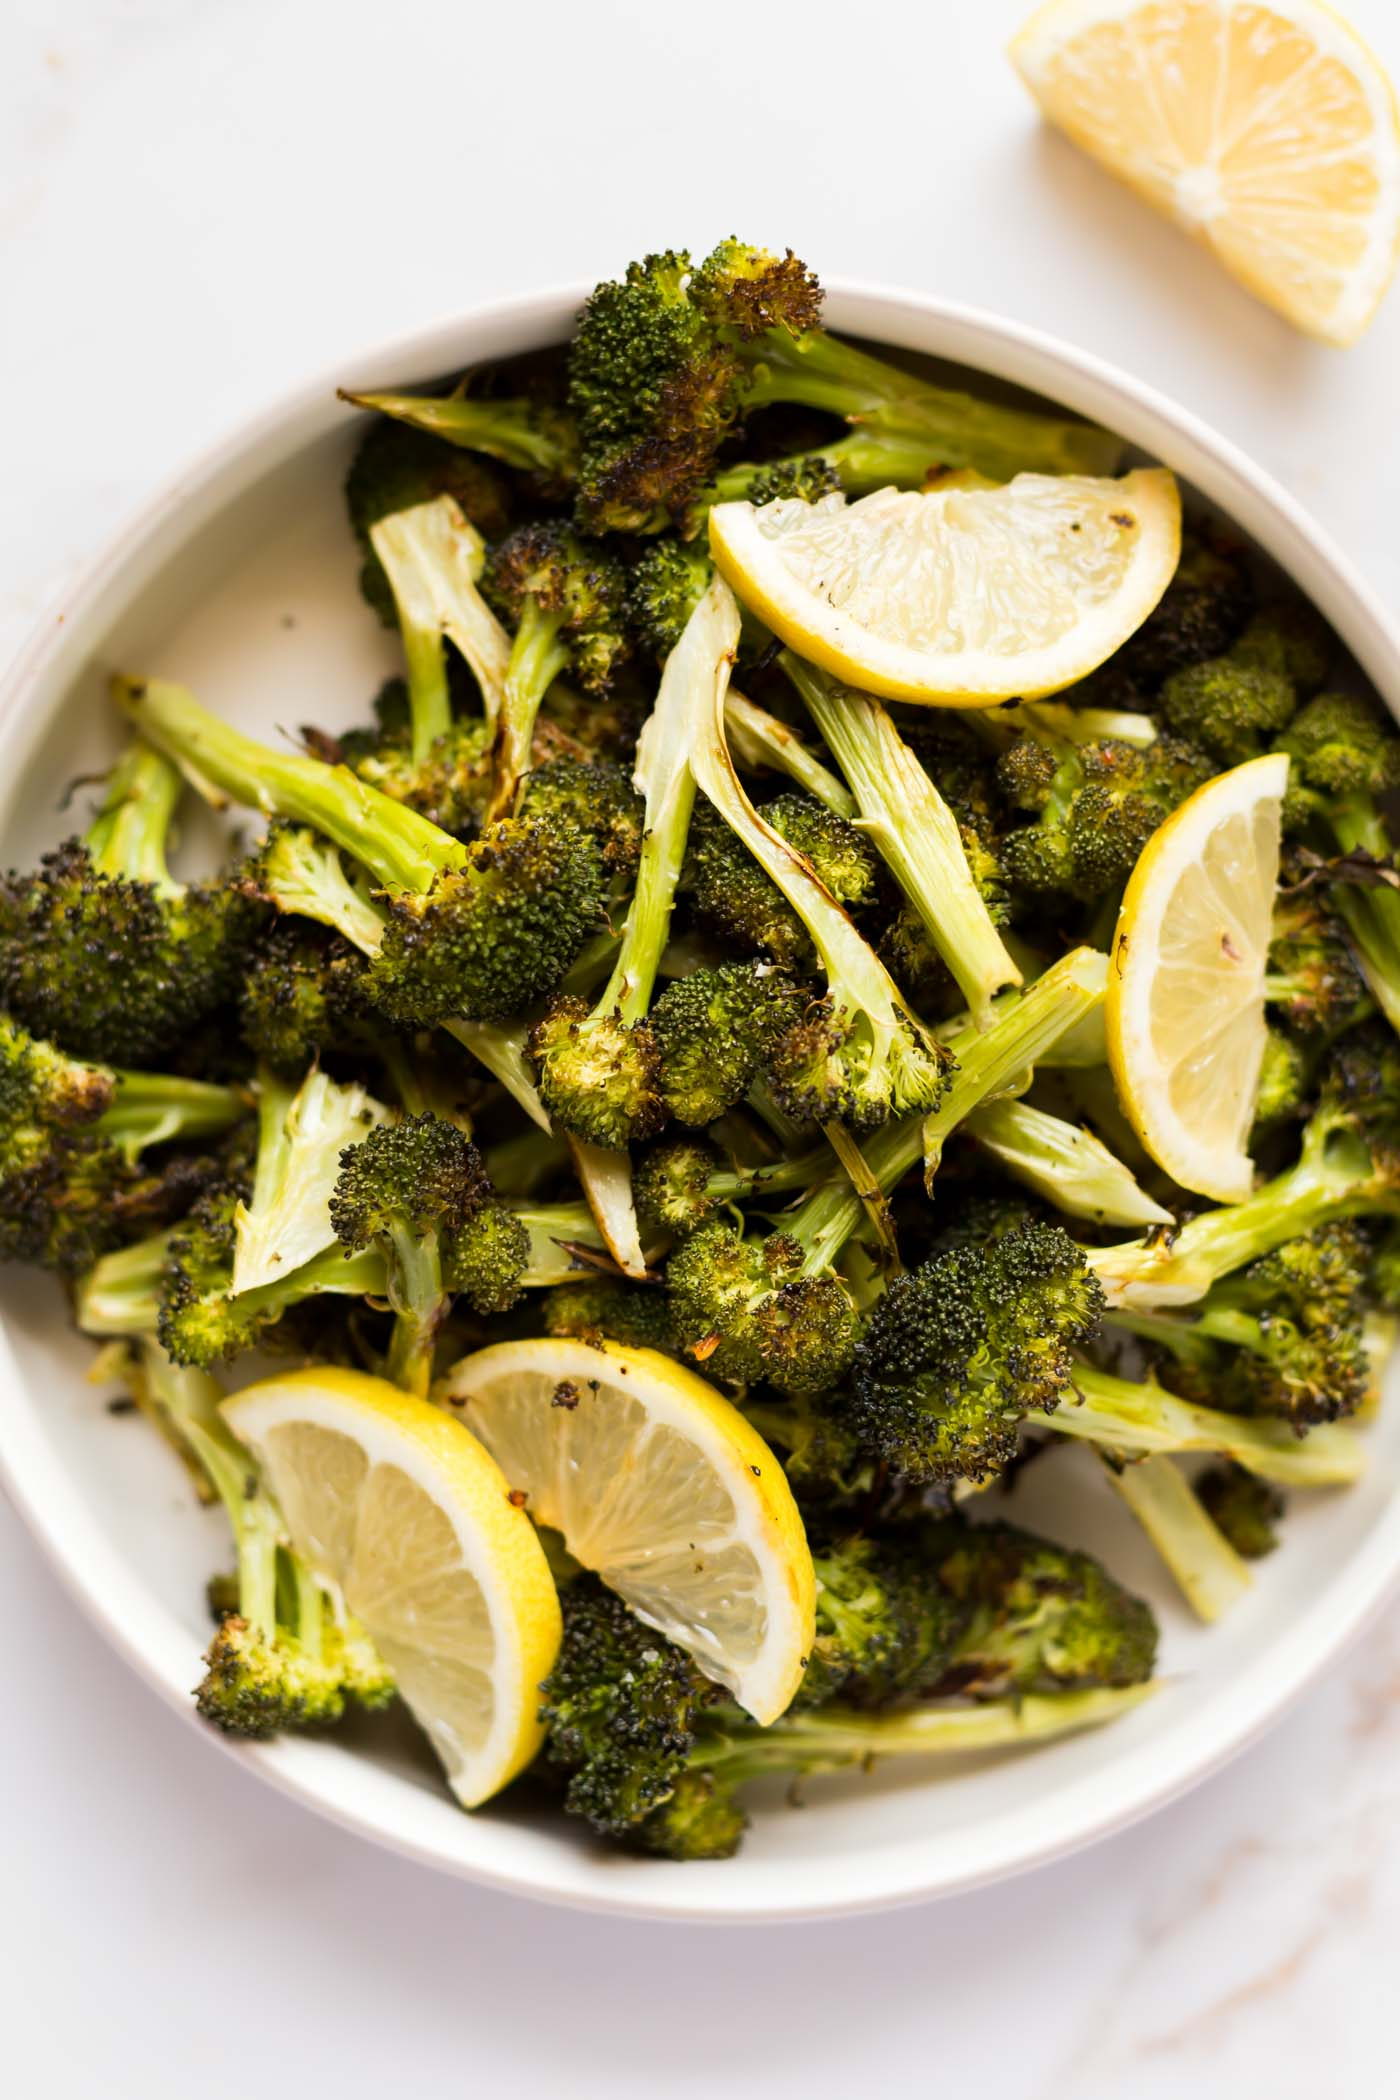 Roasted Broccoli and lemons in white bowl